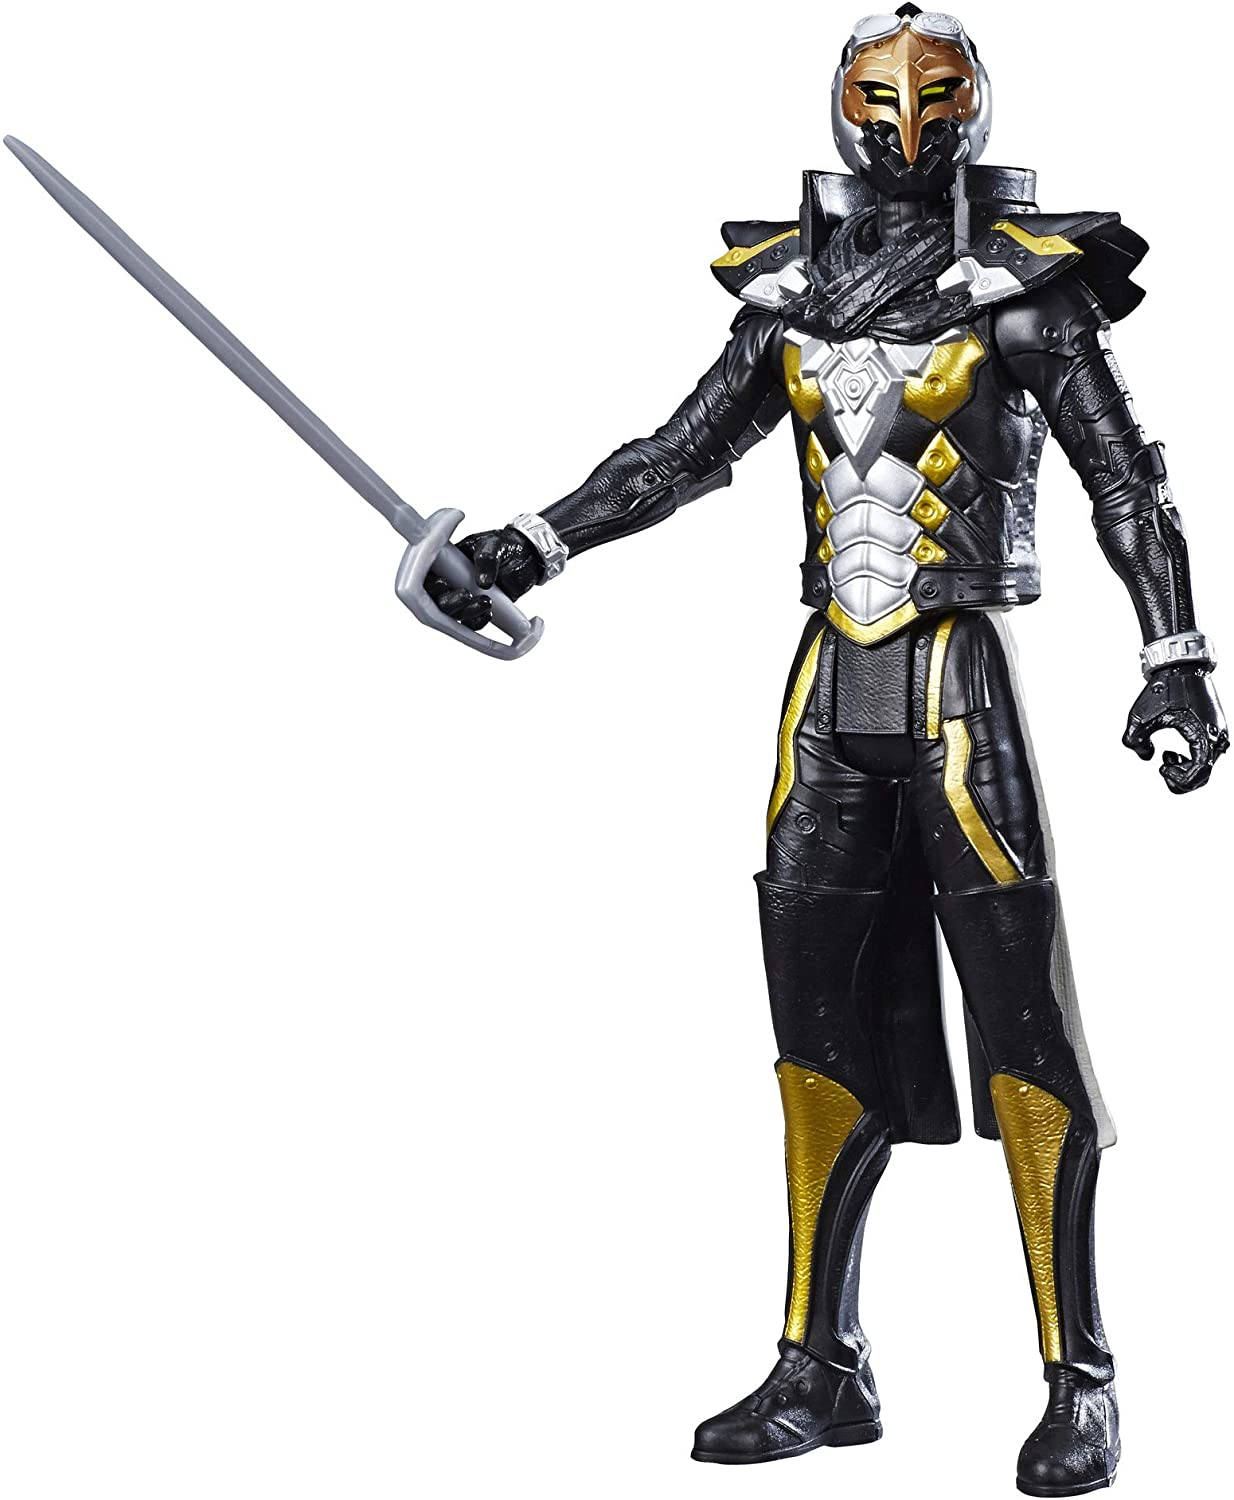 """Power Rangers Beast Morphers 12"""" Cybervillain Robo-Blaze Action Figure Toy Inspired by The TV Show"""